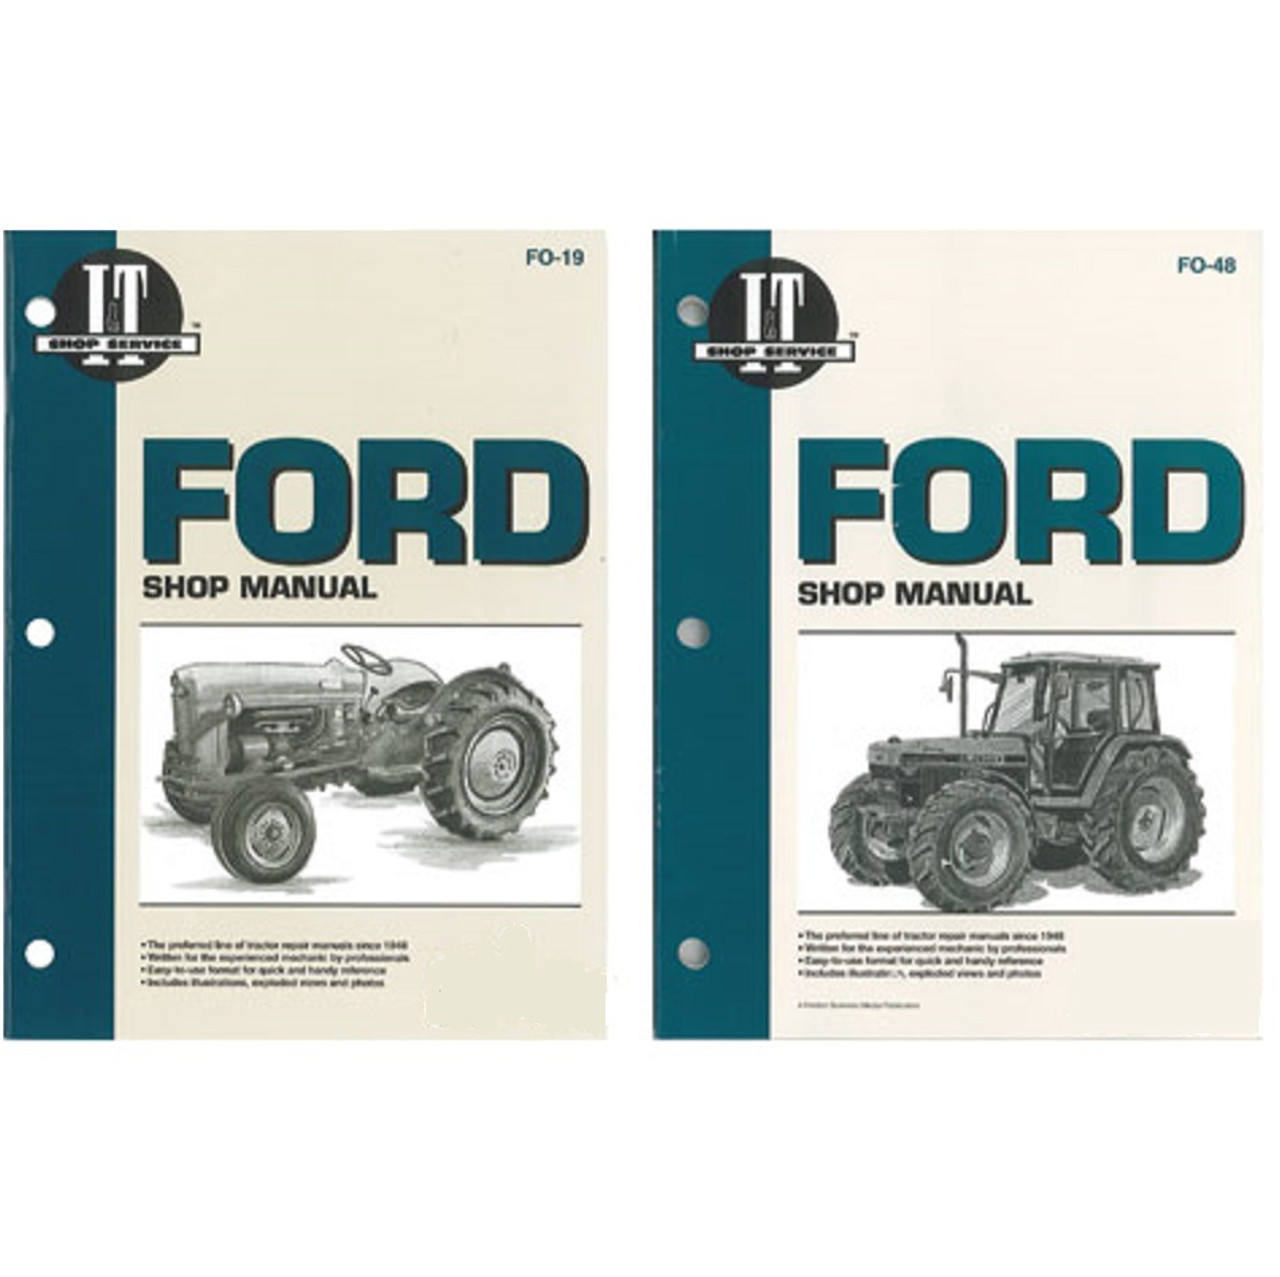 Ford Tractor Parts For 8n 9n Naa 600 800 Dexta Wiring Diagrams Repair Manual